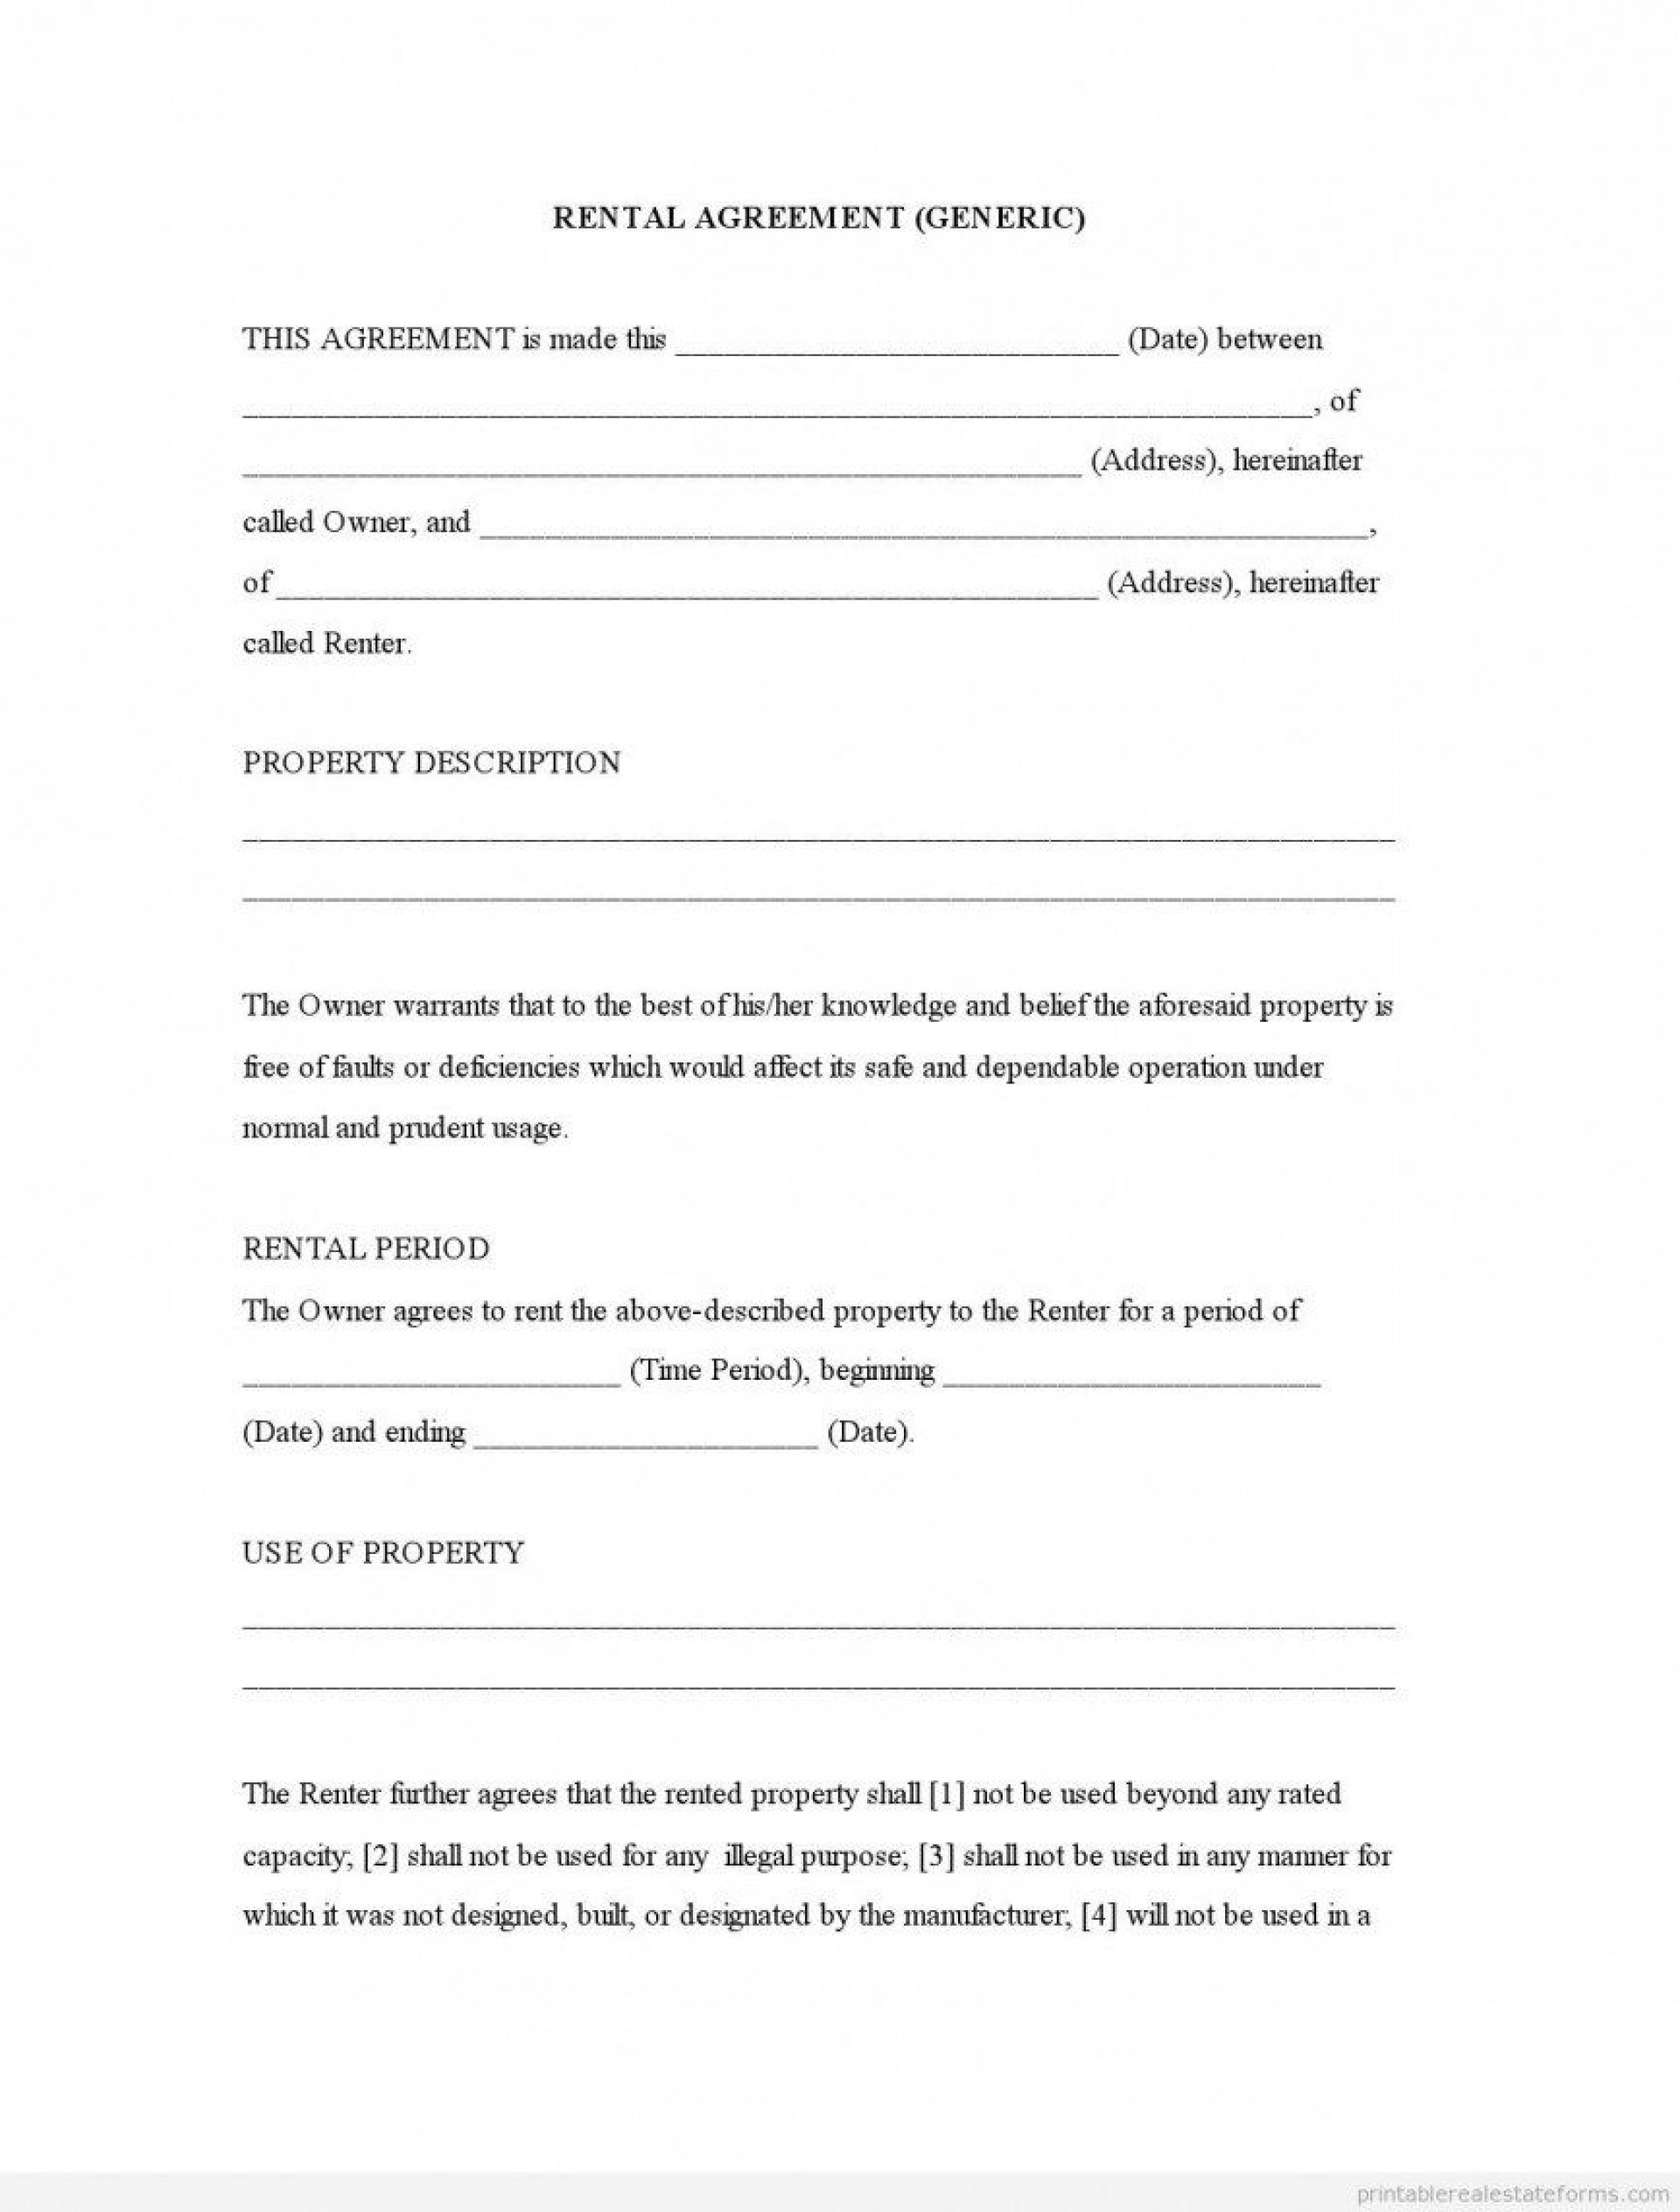 009 Magnificent Rent Agreement Format In Word Free Download Design  Rental Tamil Hindi For House1920